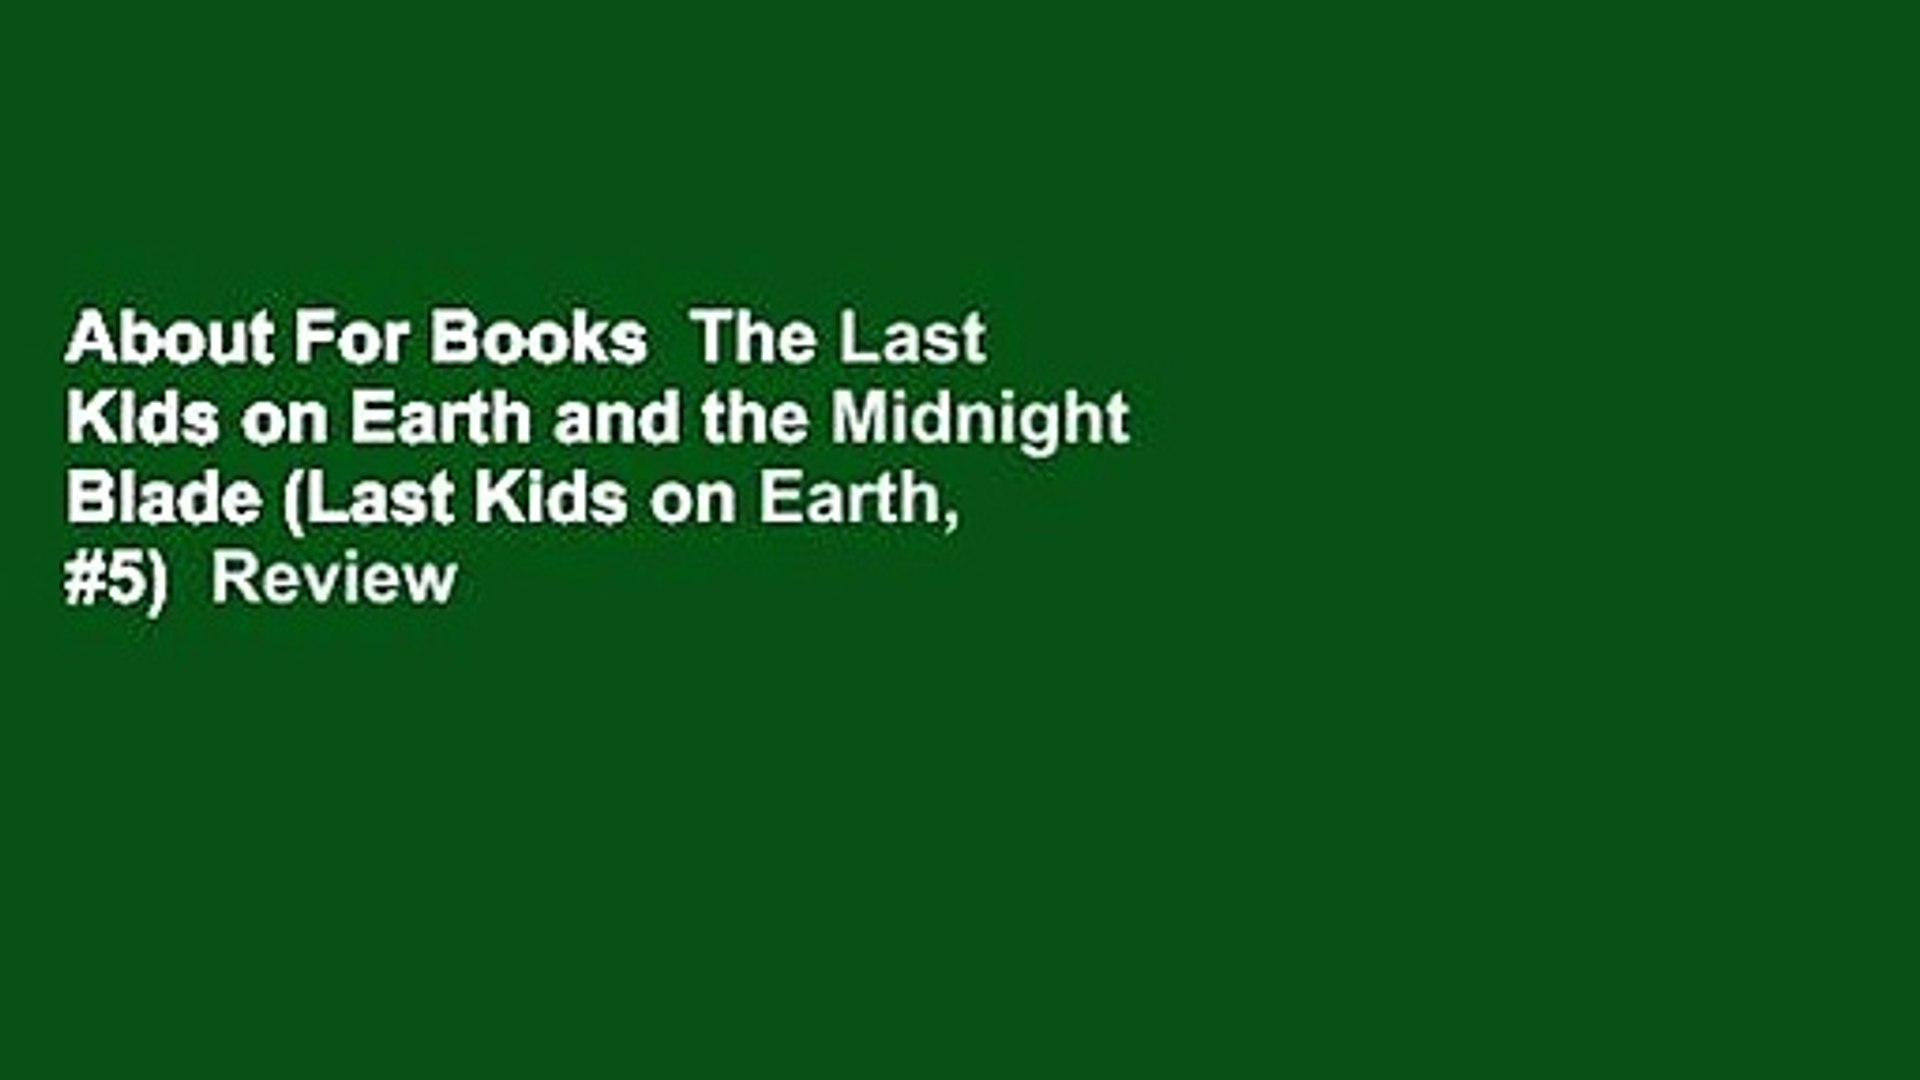 About For Books  The Last Kids on Earth and the Midnight Blade (Last Kids on Earth, #5)  Review